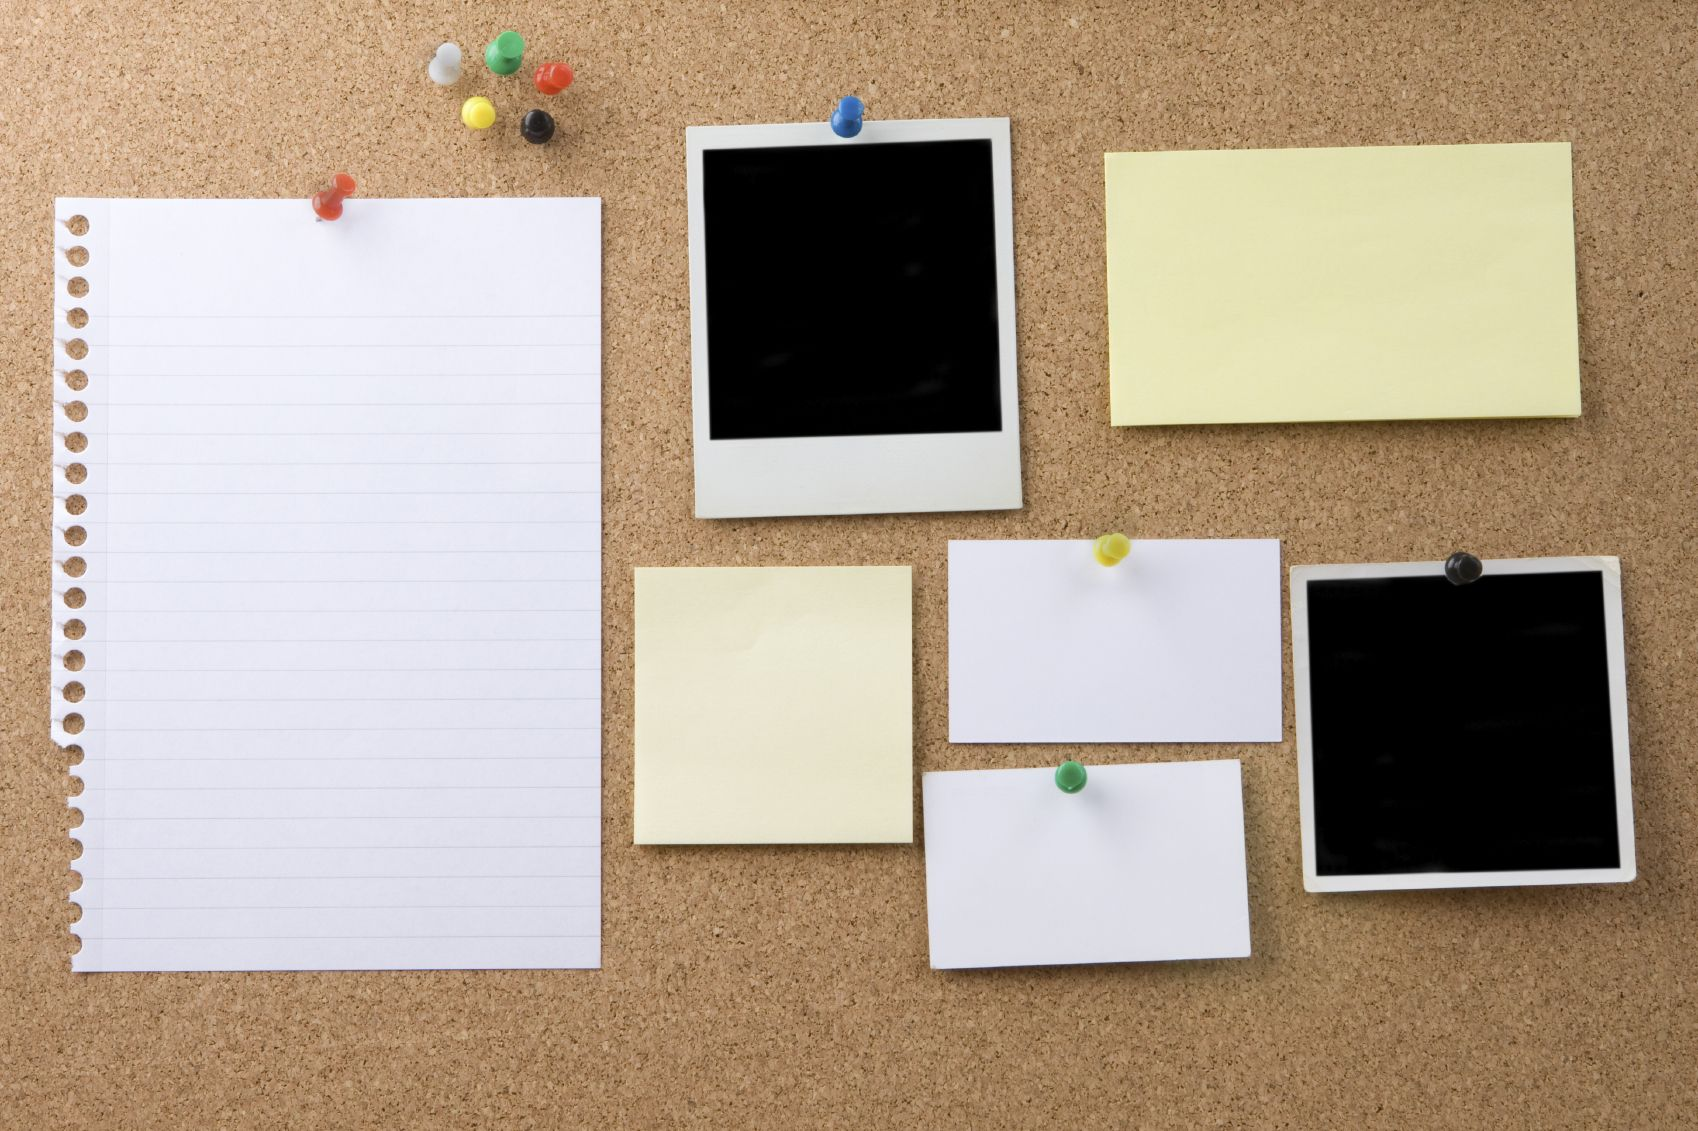 20 Best Images About Cork Board Ideas Check It Out Cork Board Cork Board Ideas For Bedroom Diy Cork Board